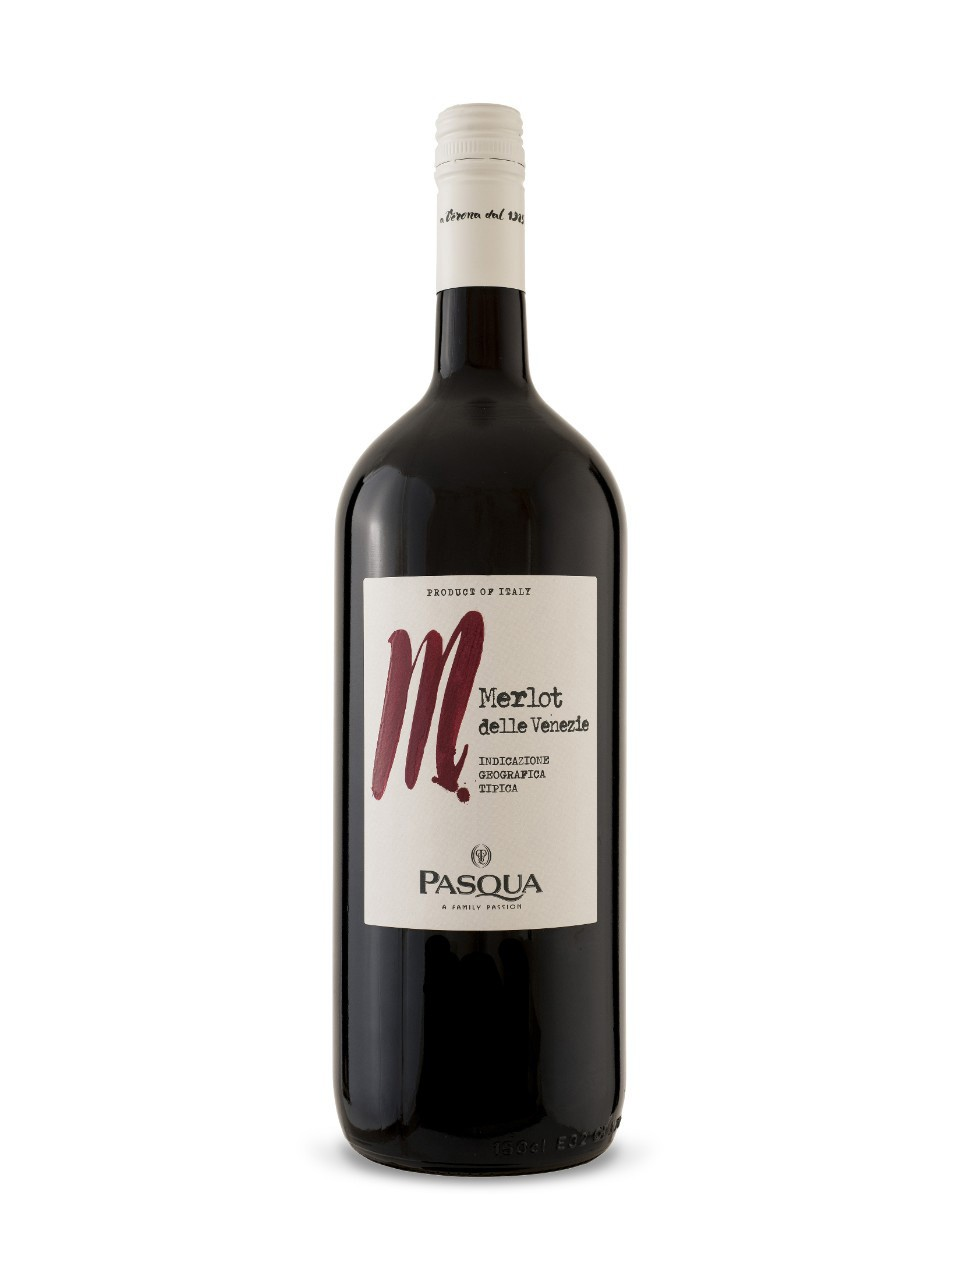 Image for Pasqua Merlot Delle Venzie IGT from LCBO